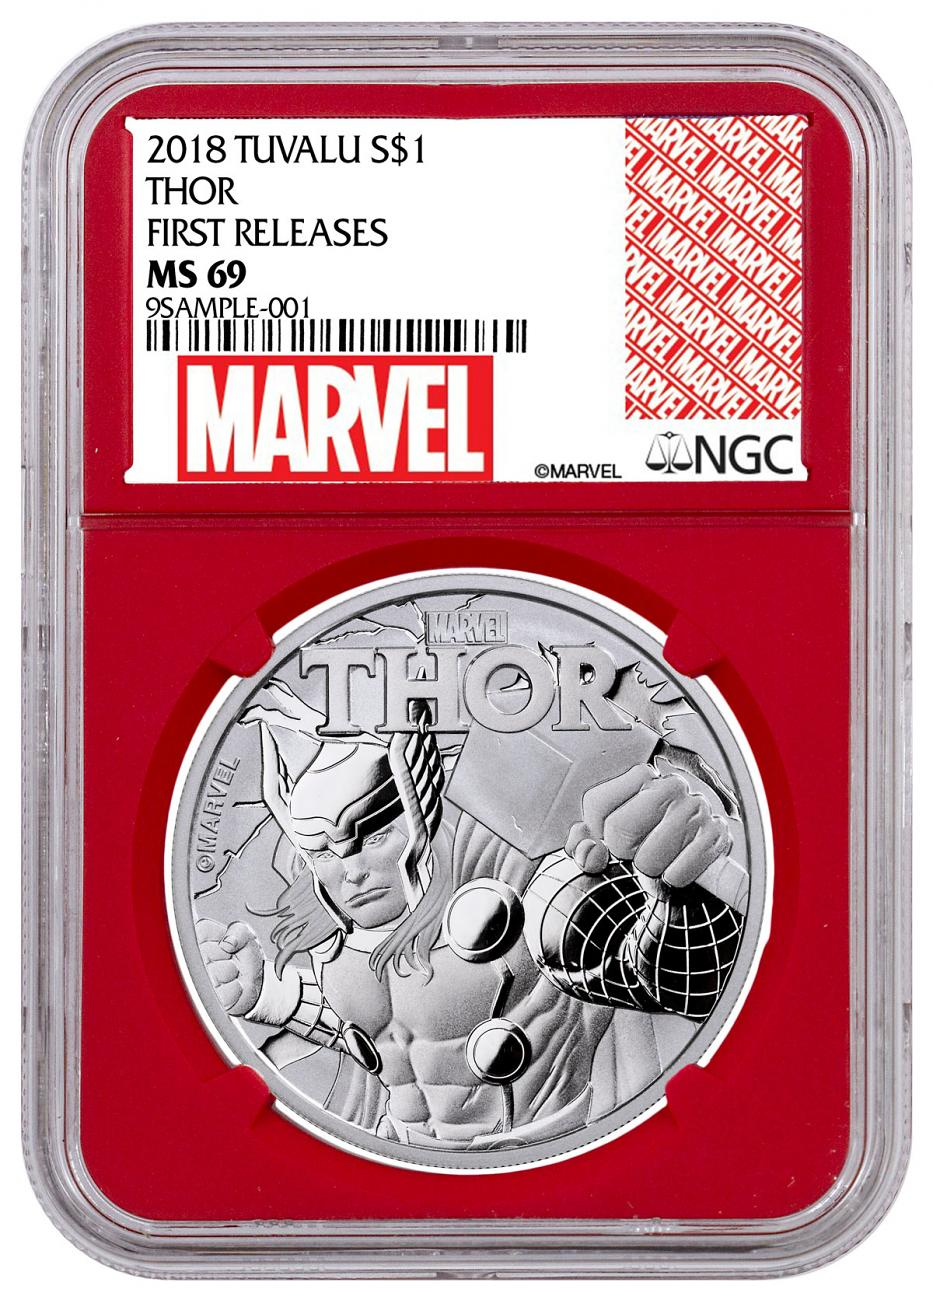 2018 Tuvalu Thor 1 oz Silver Marvel Series $1 Coin NGC MS69 FR Red Core Holder Exclusive Marvel Label